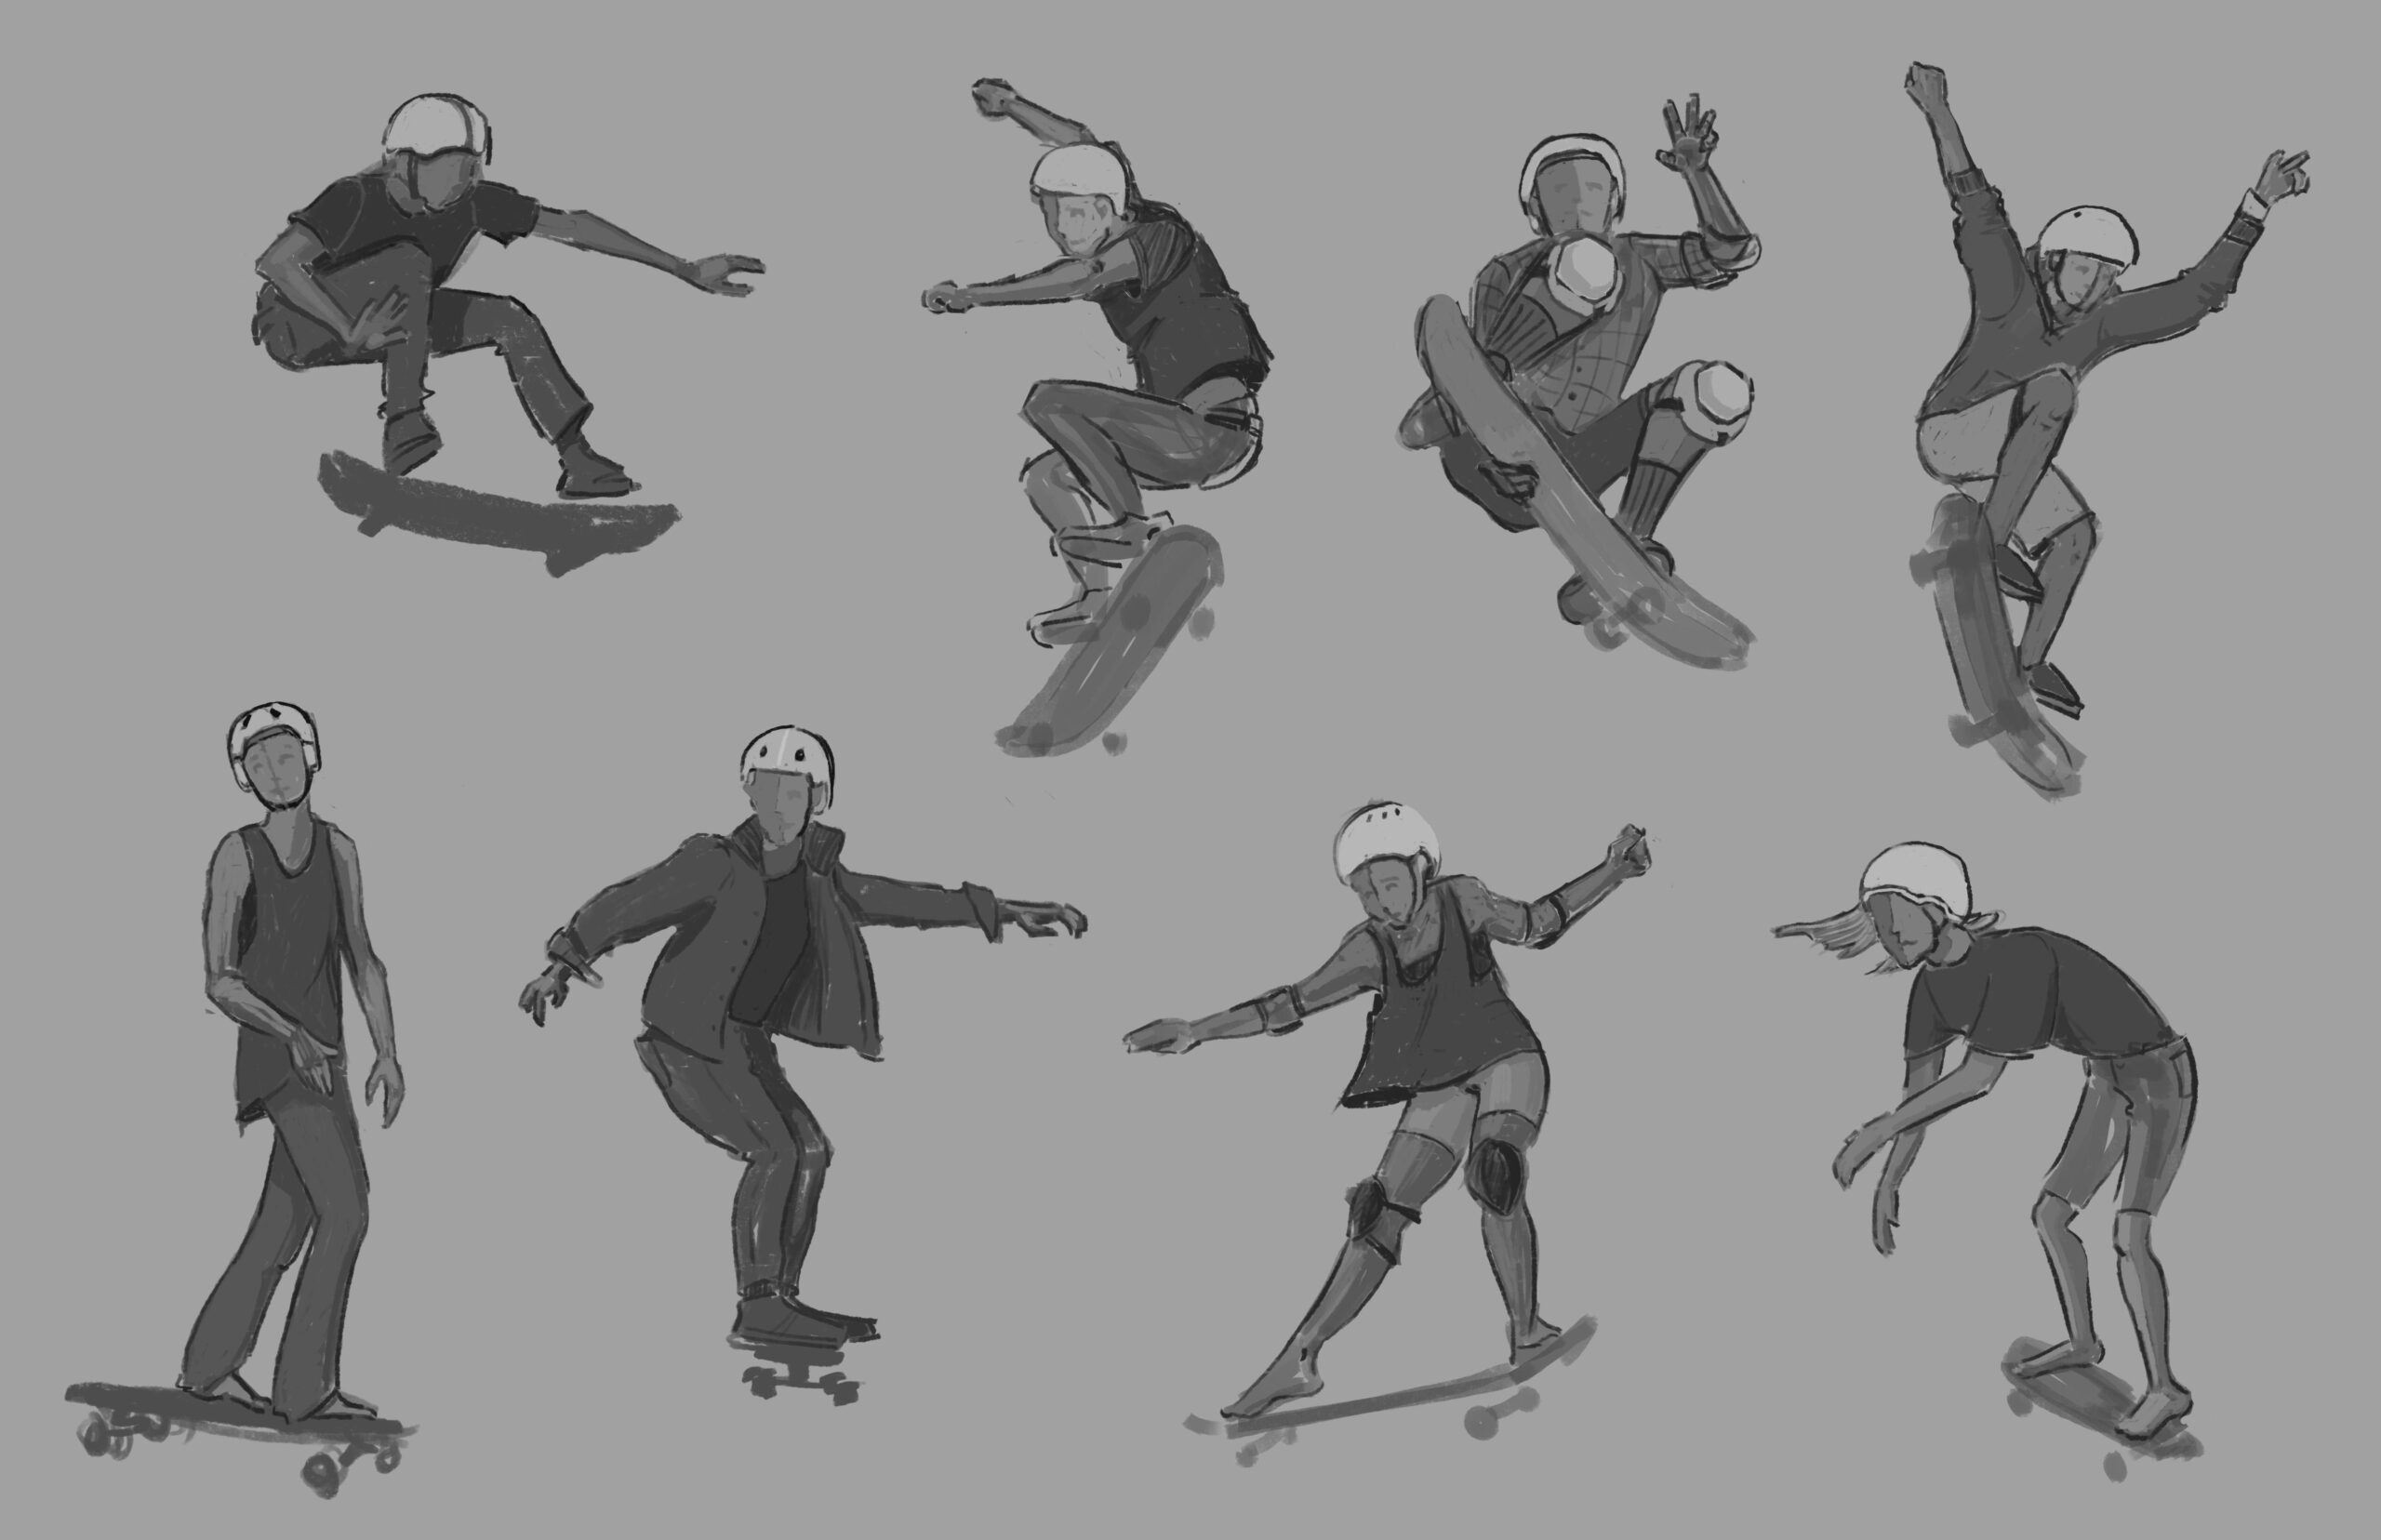 Skateboard poses drawing reference